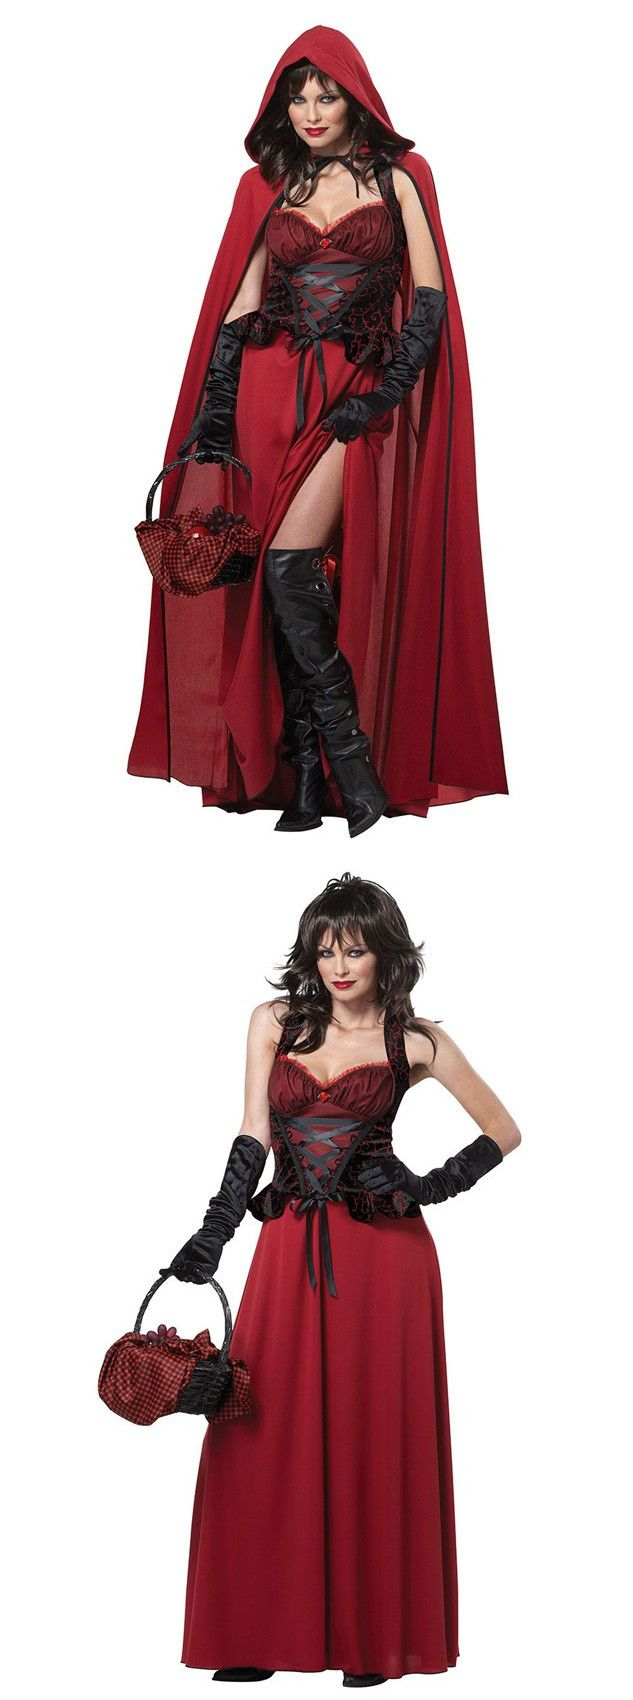 long red riding hood halloween costume for womensexy halloween costumes for girlsscary